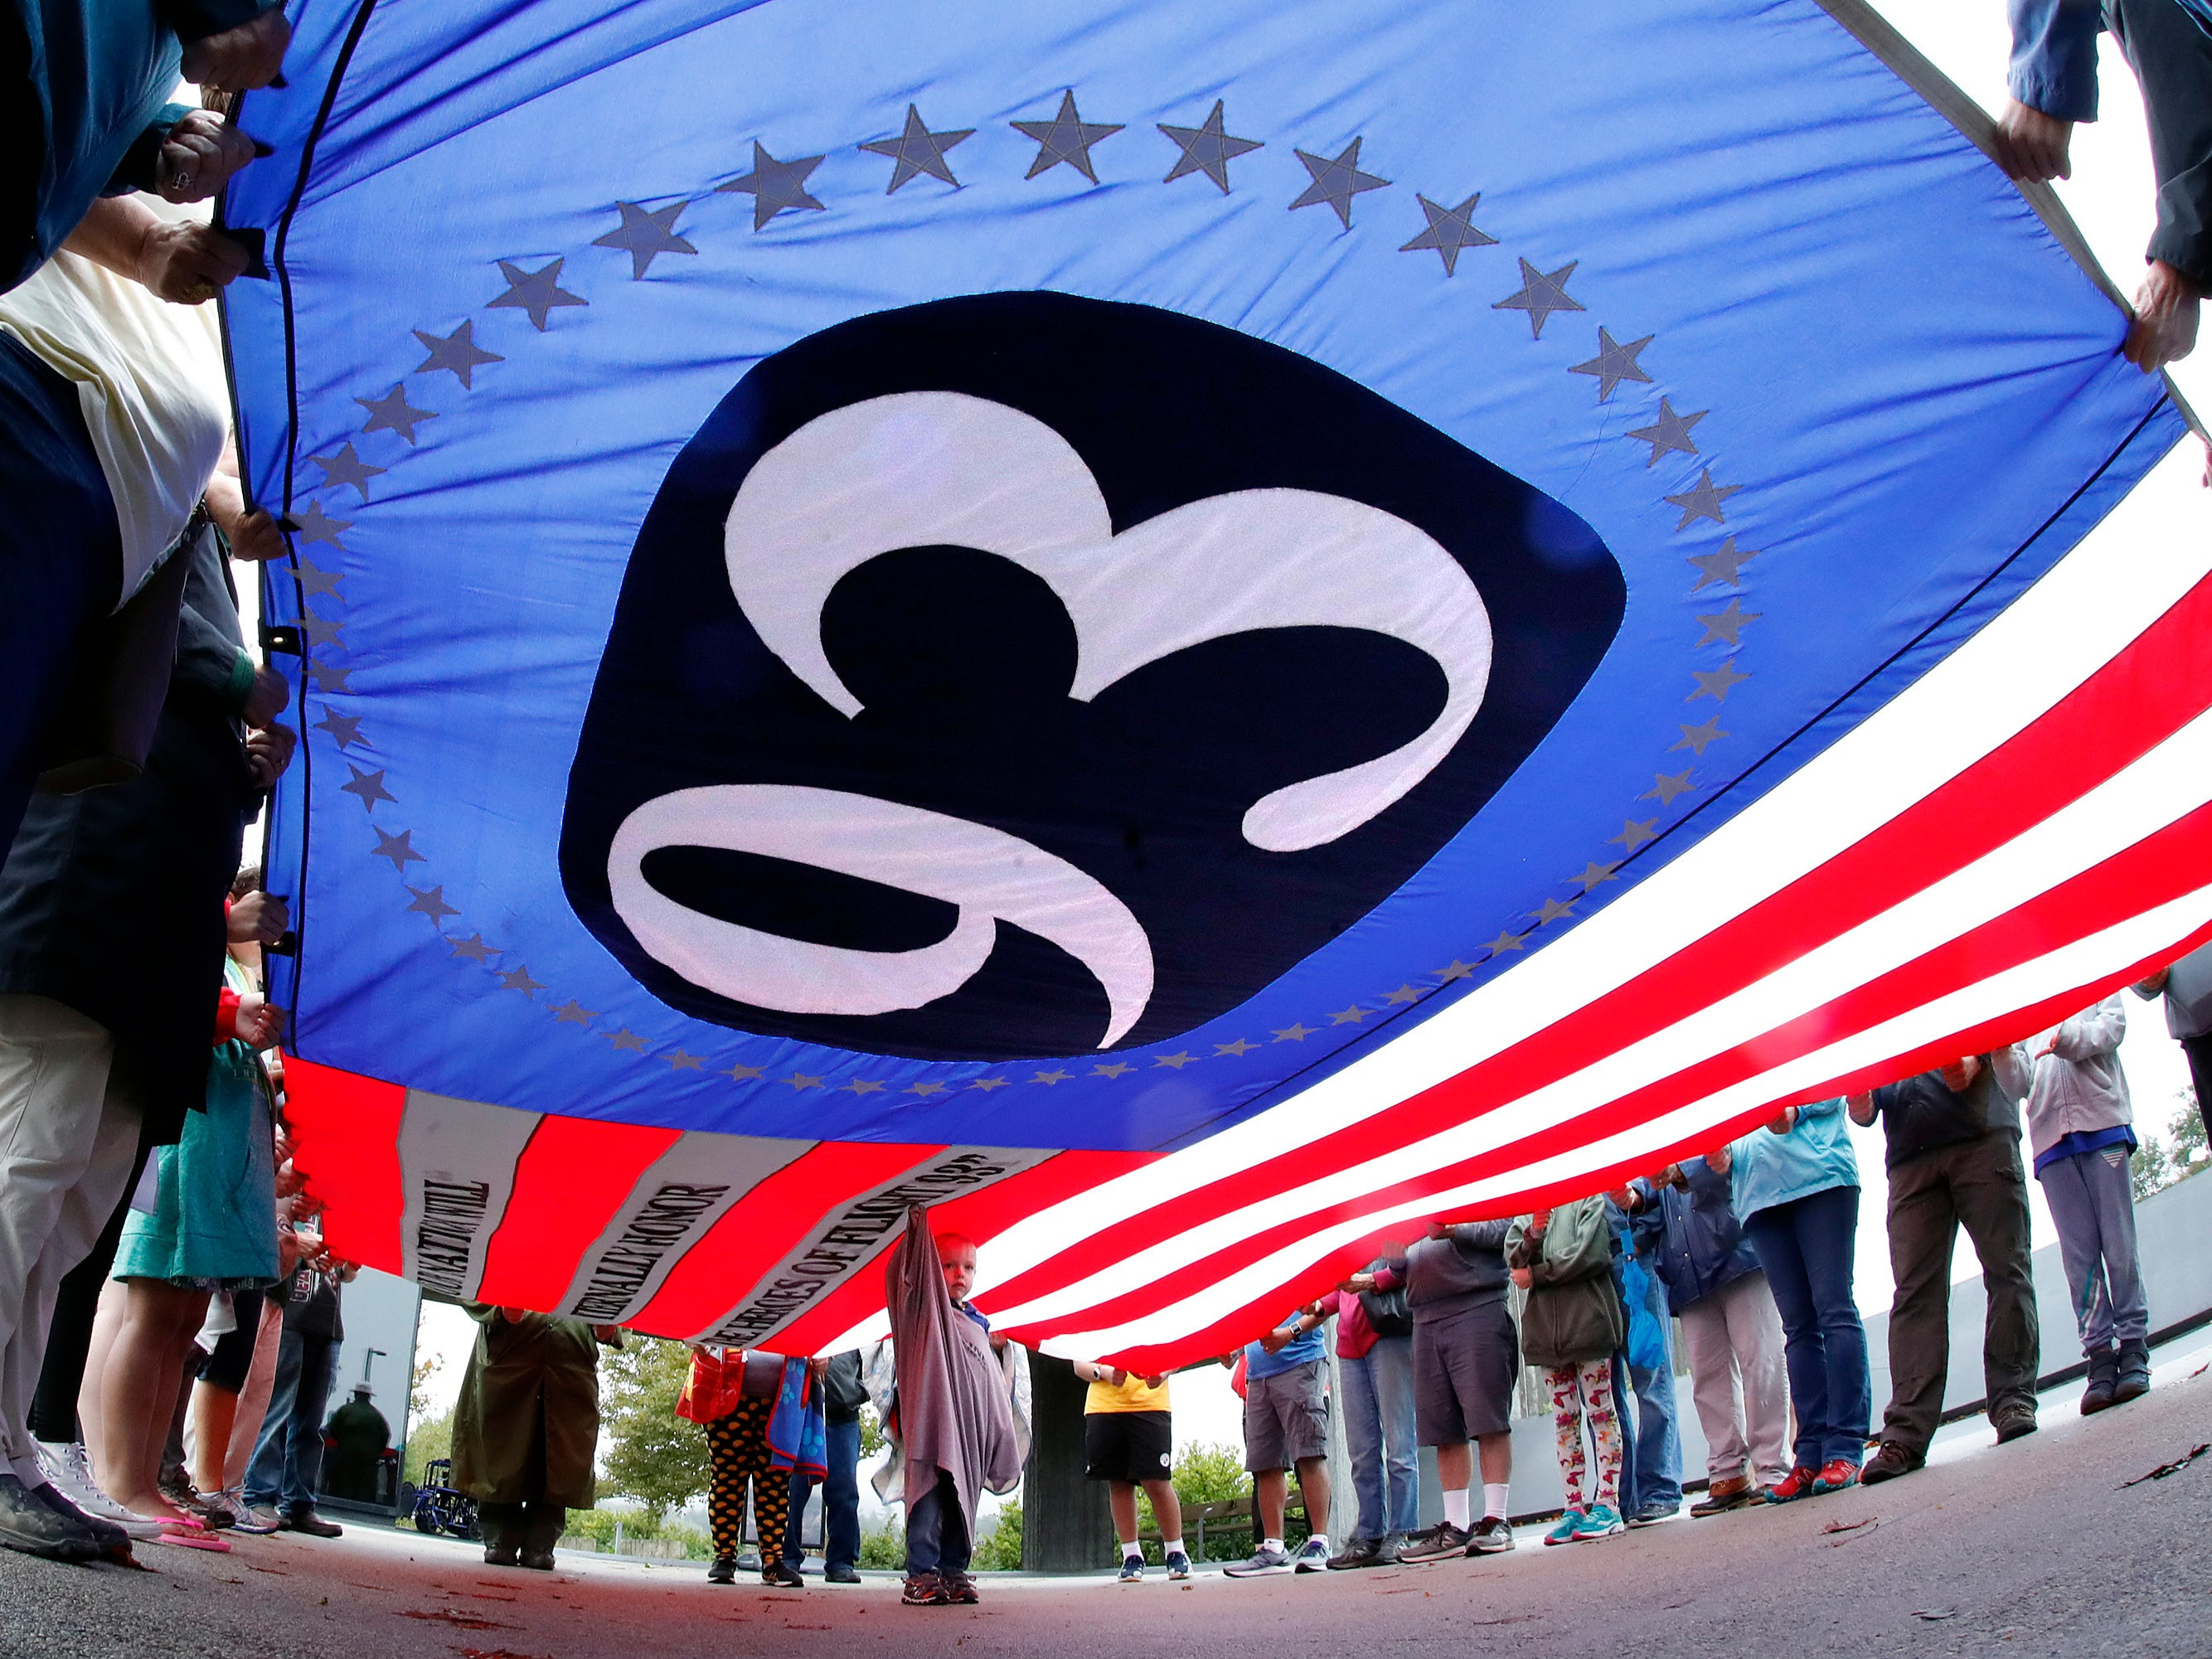 Visitors to the Flight 93 National Memorial in Shanksville, Pa., hold a giant Flight 93 flag during a moment of remembrance Monday, Sept. 10, 2018, as the nation marks the 17th anniversary of the Sept. 11, 2001, attacks. (AP Photo/Gene J. Puskar) ORG XMIT: PAGP101